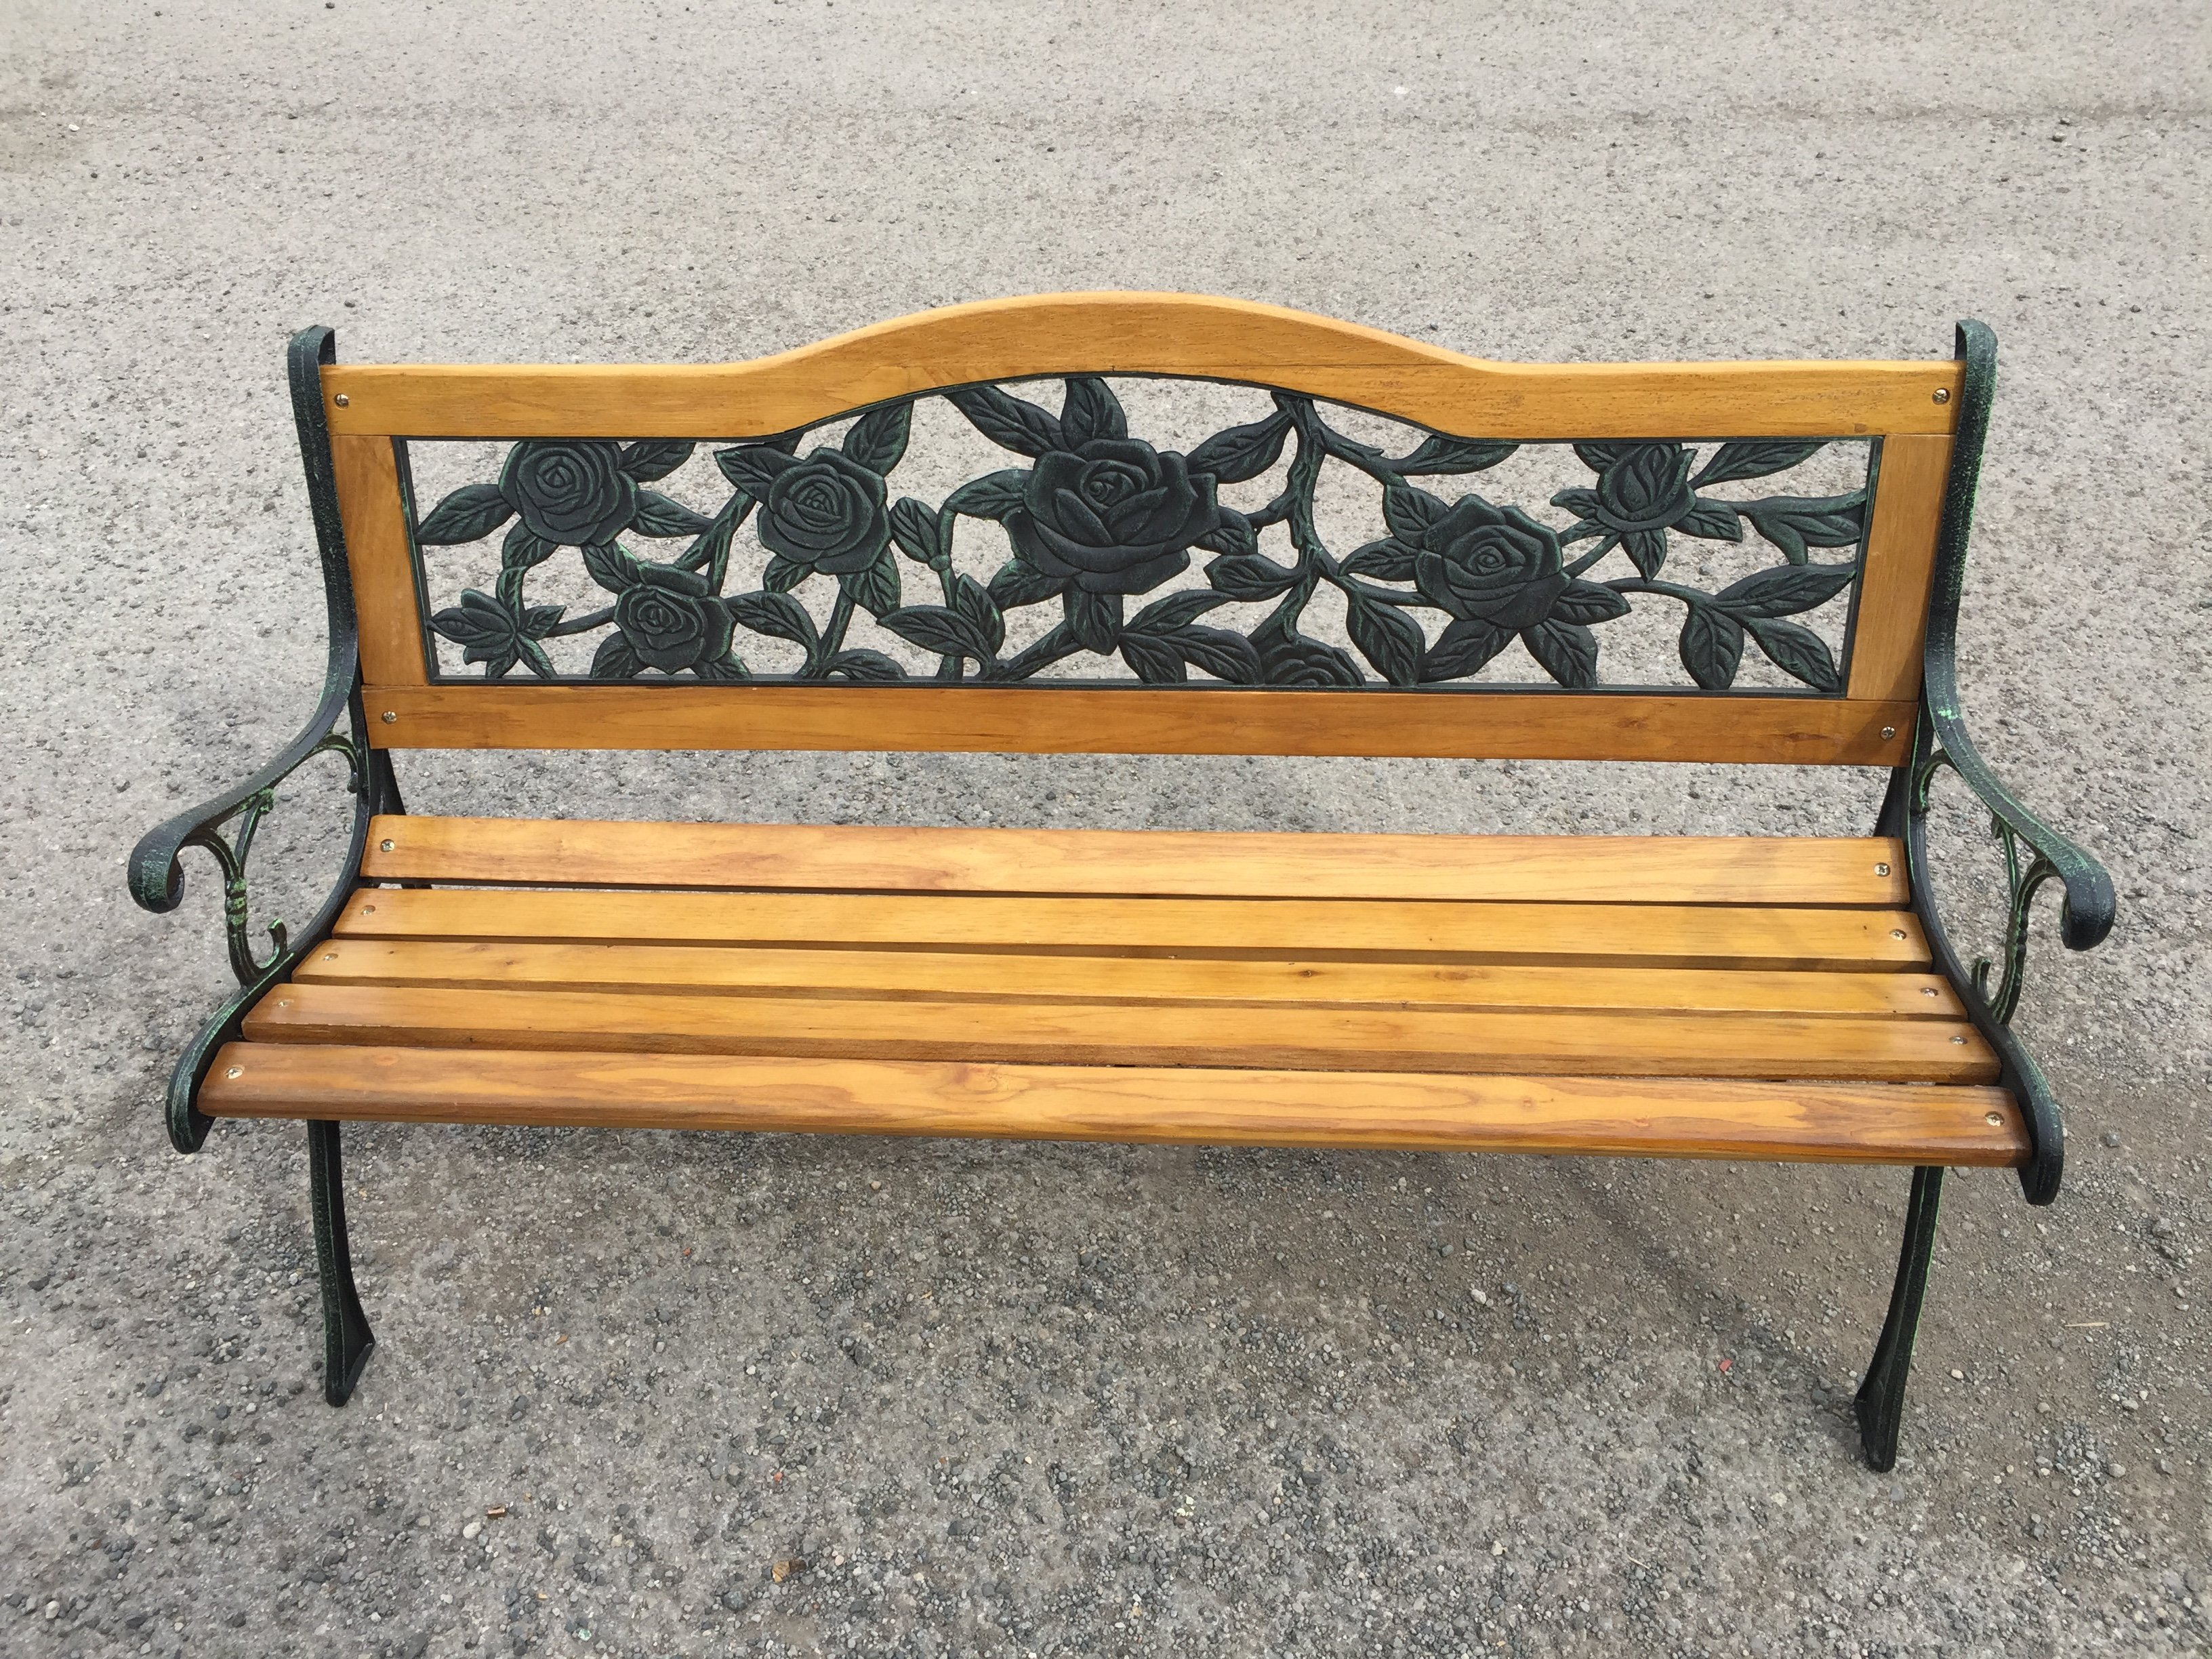 New Year Offer Oxford 2 Seater Garden Bench Simply Wood